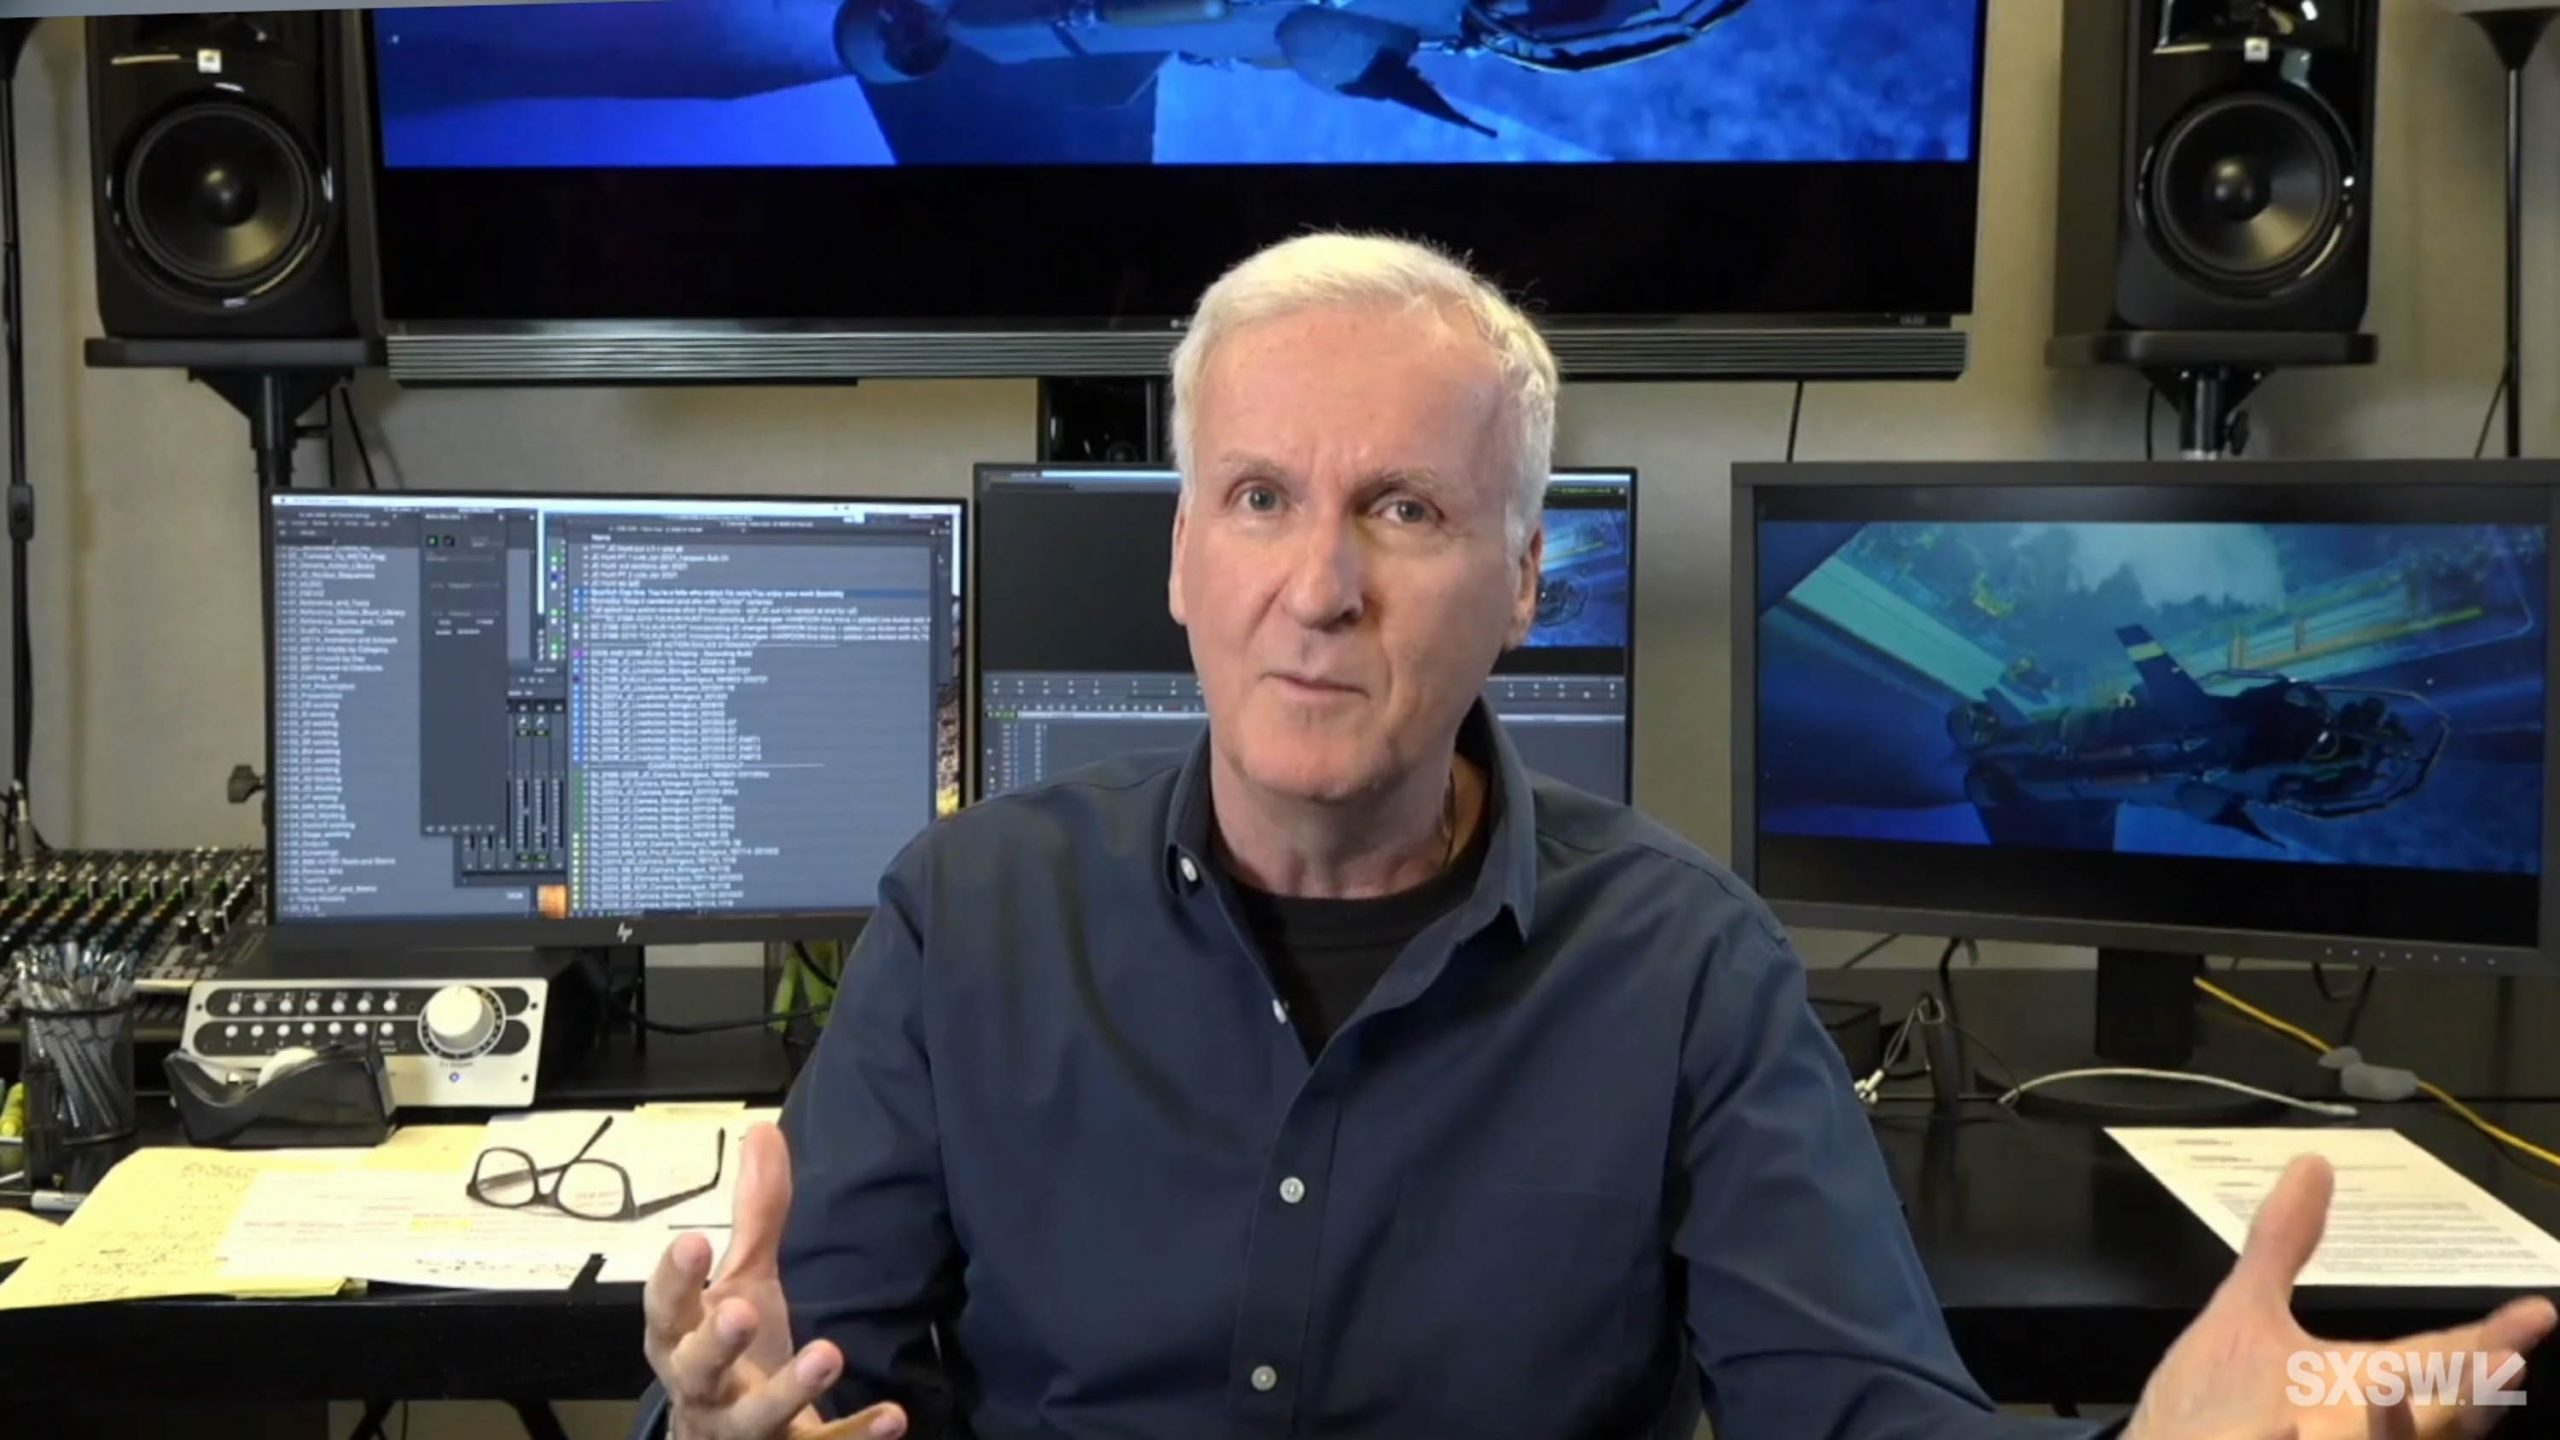 James Cameron speaks during the featured session at SXSW Online on March 18, 2021